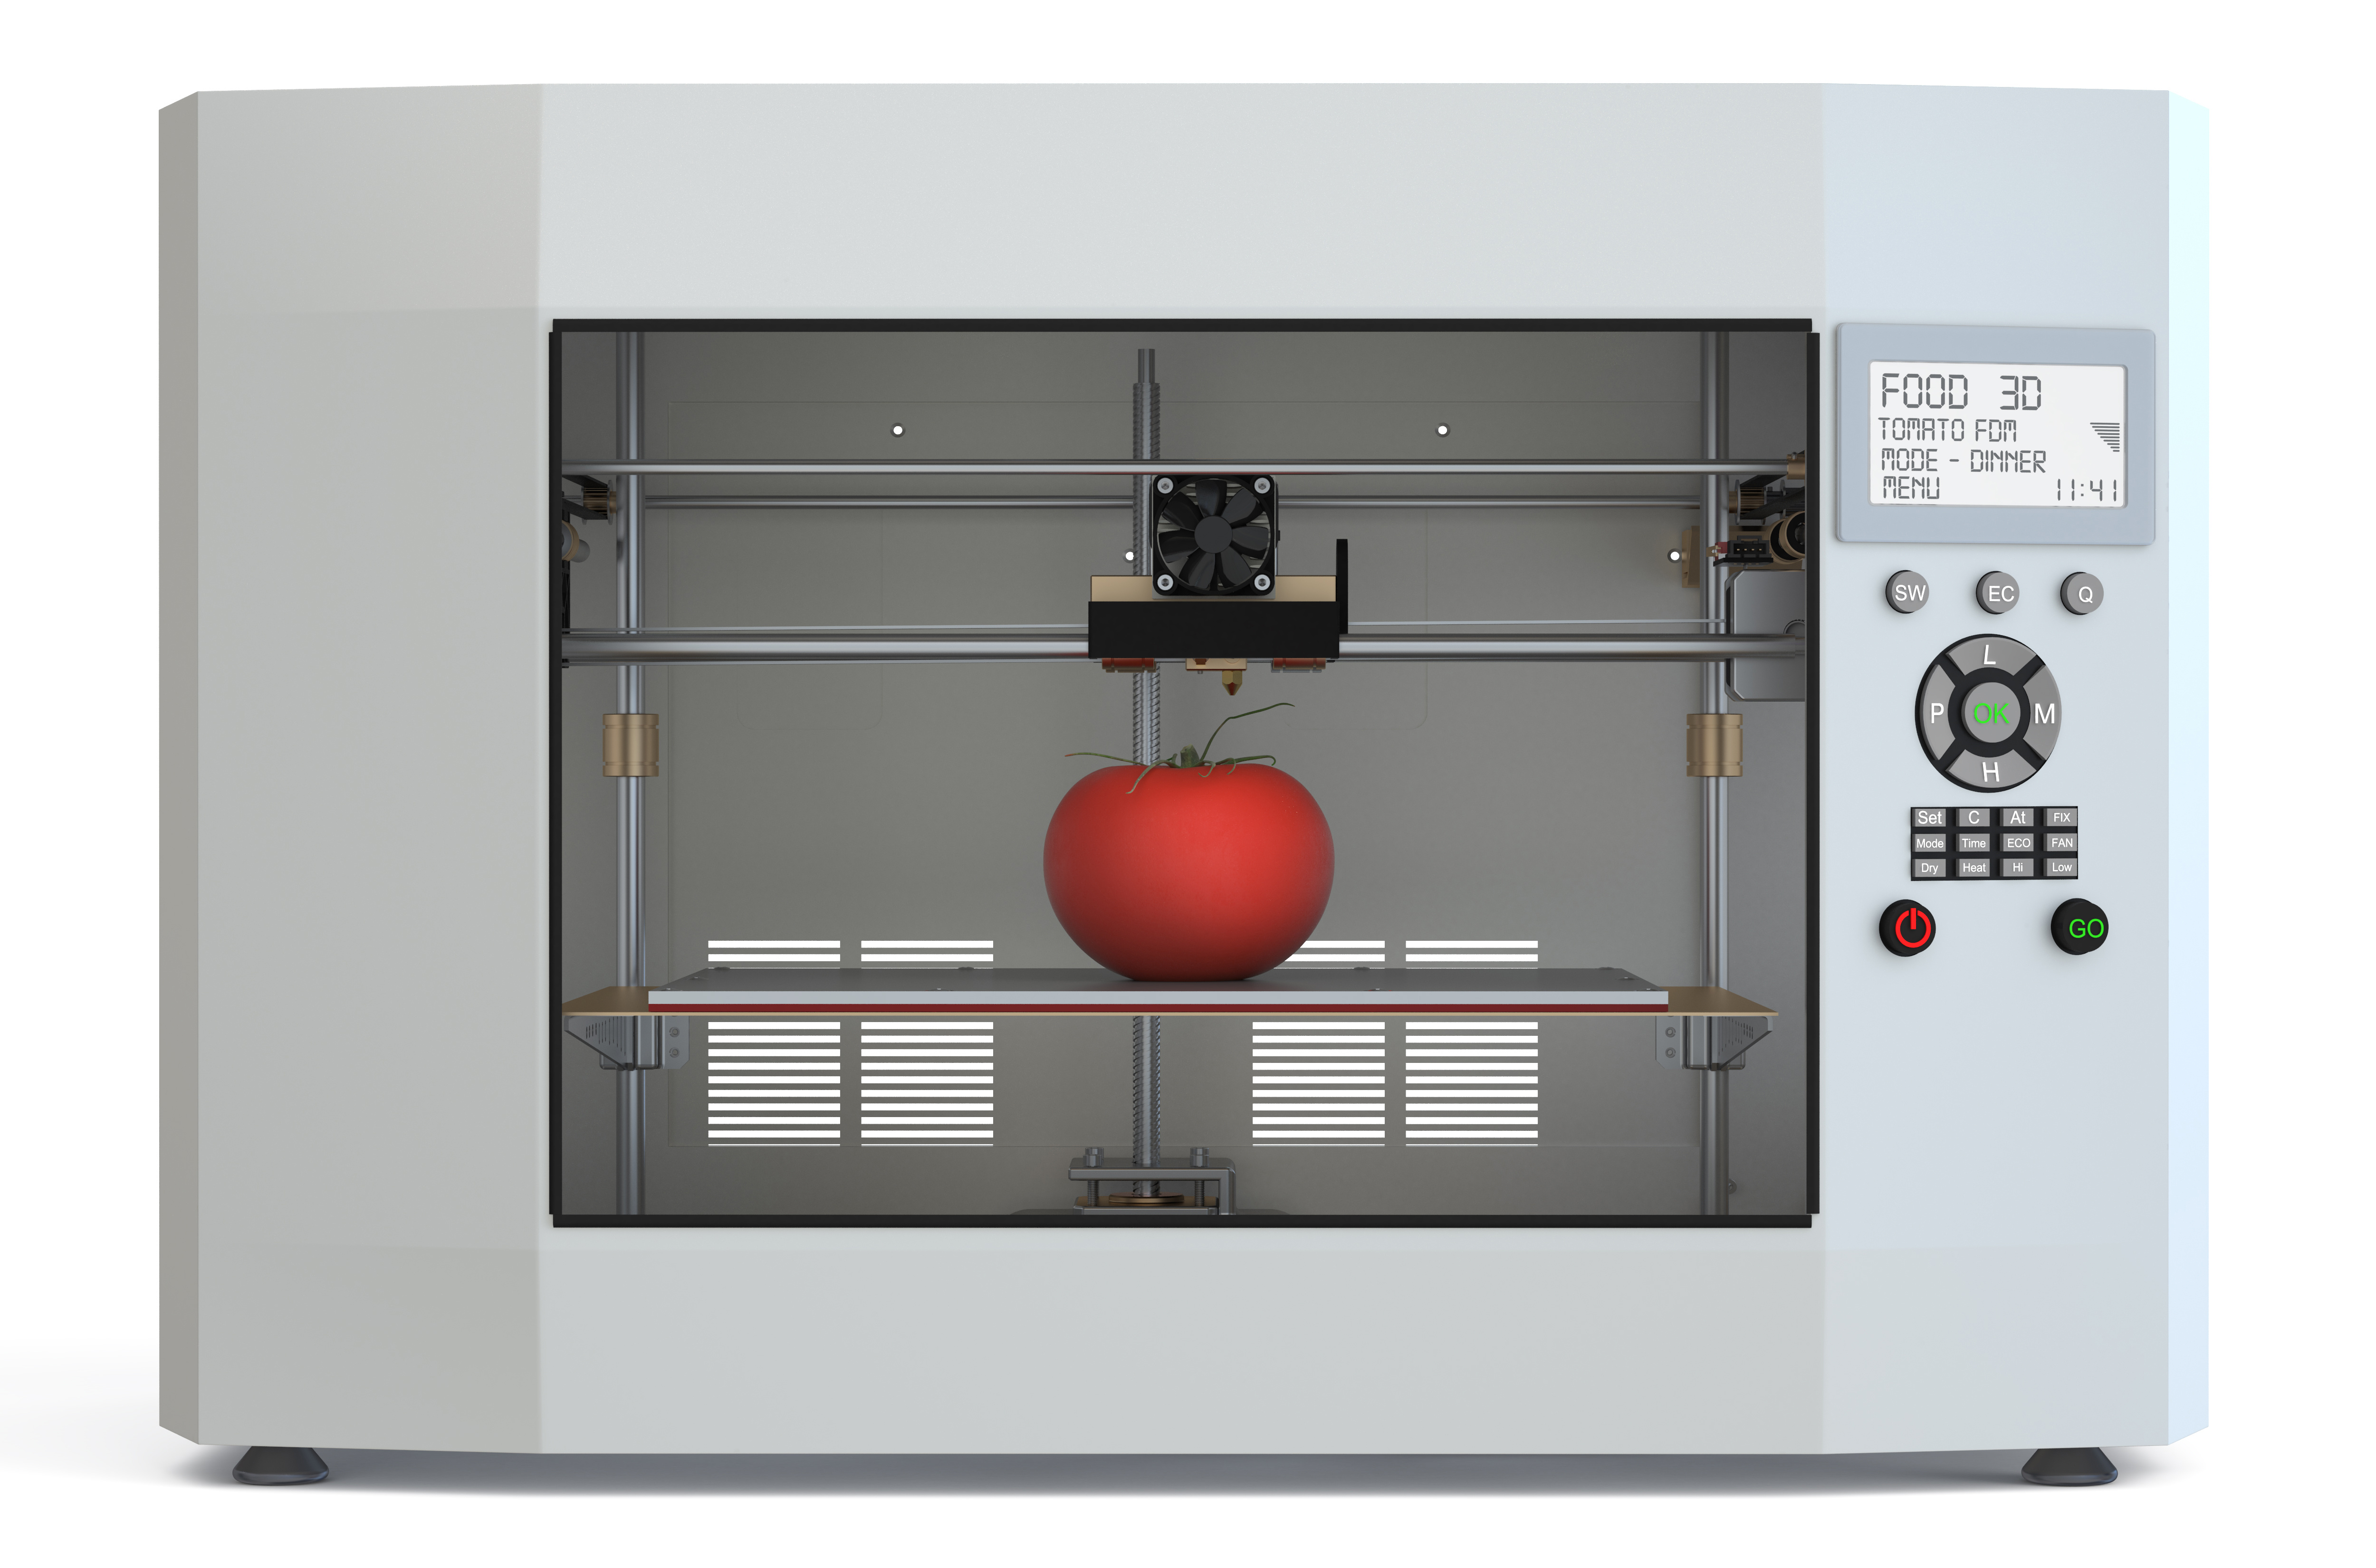 How 3D printing could improve the future of food